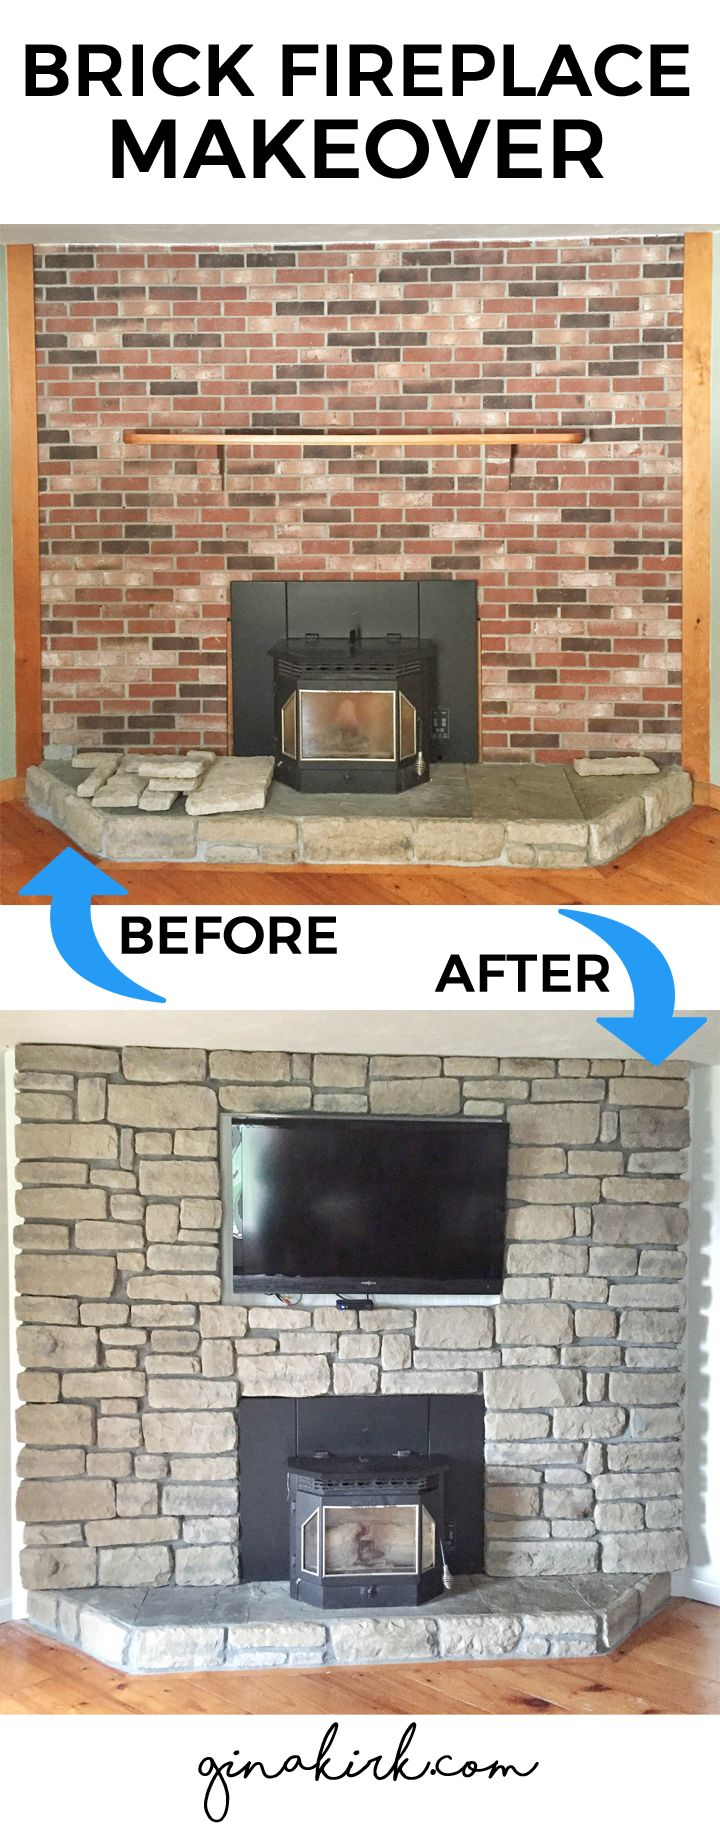 Brick fireplace makeover | Stone veneer fireplace wall | home design living space makeover | brick wall before and after | GinaKirk.com